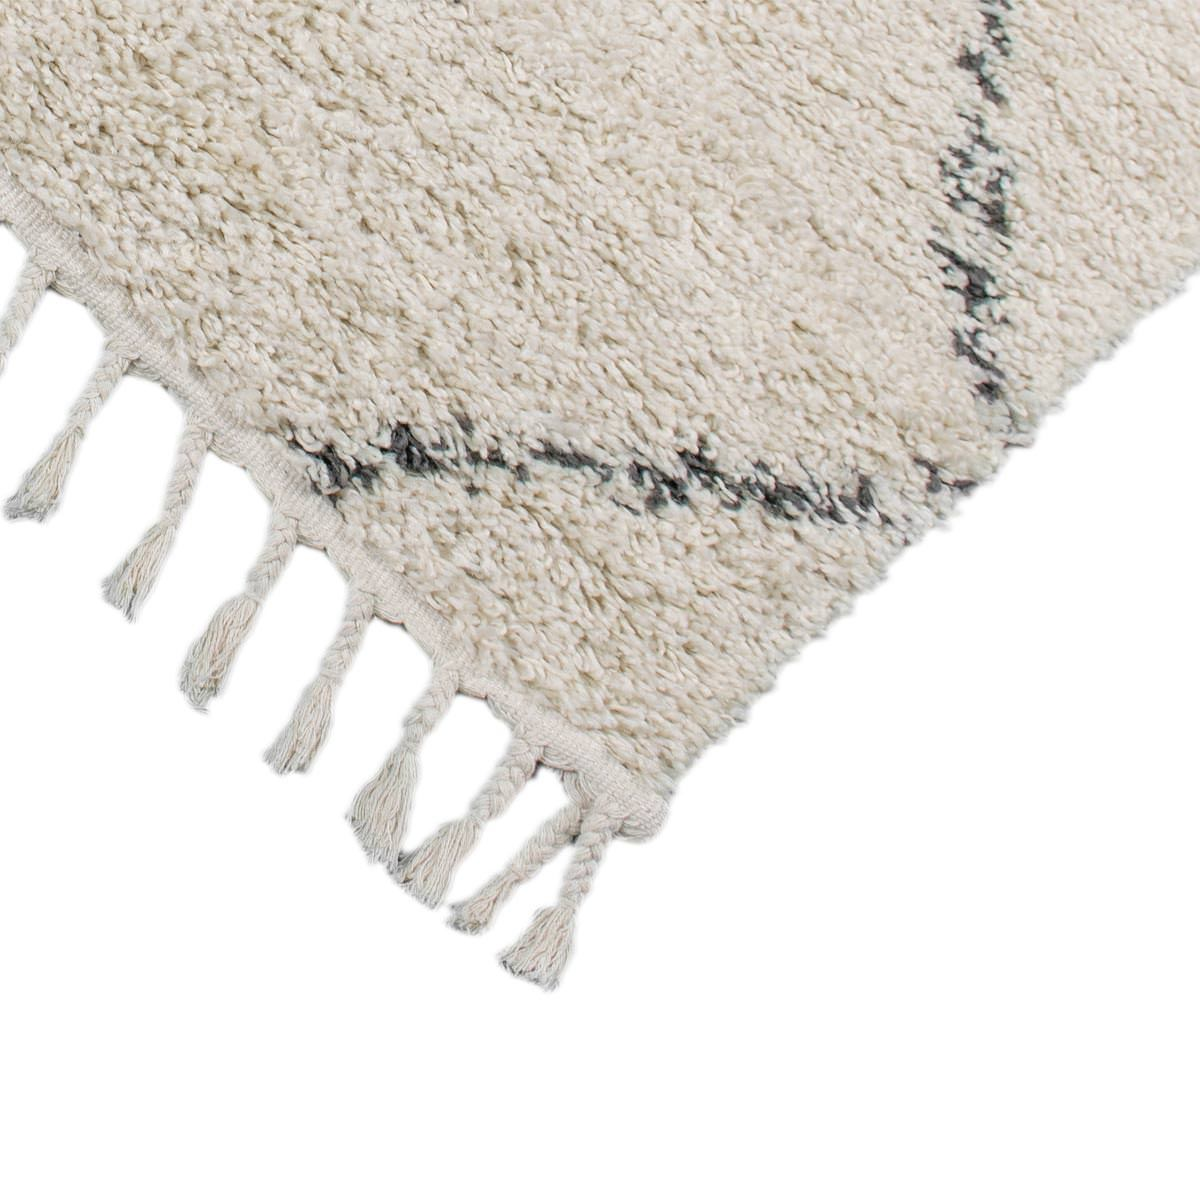 Shaggy Marrakech Rug 03 Cream/Black 5